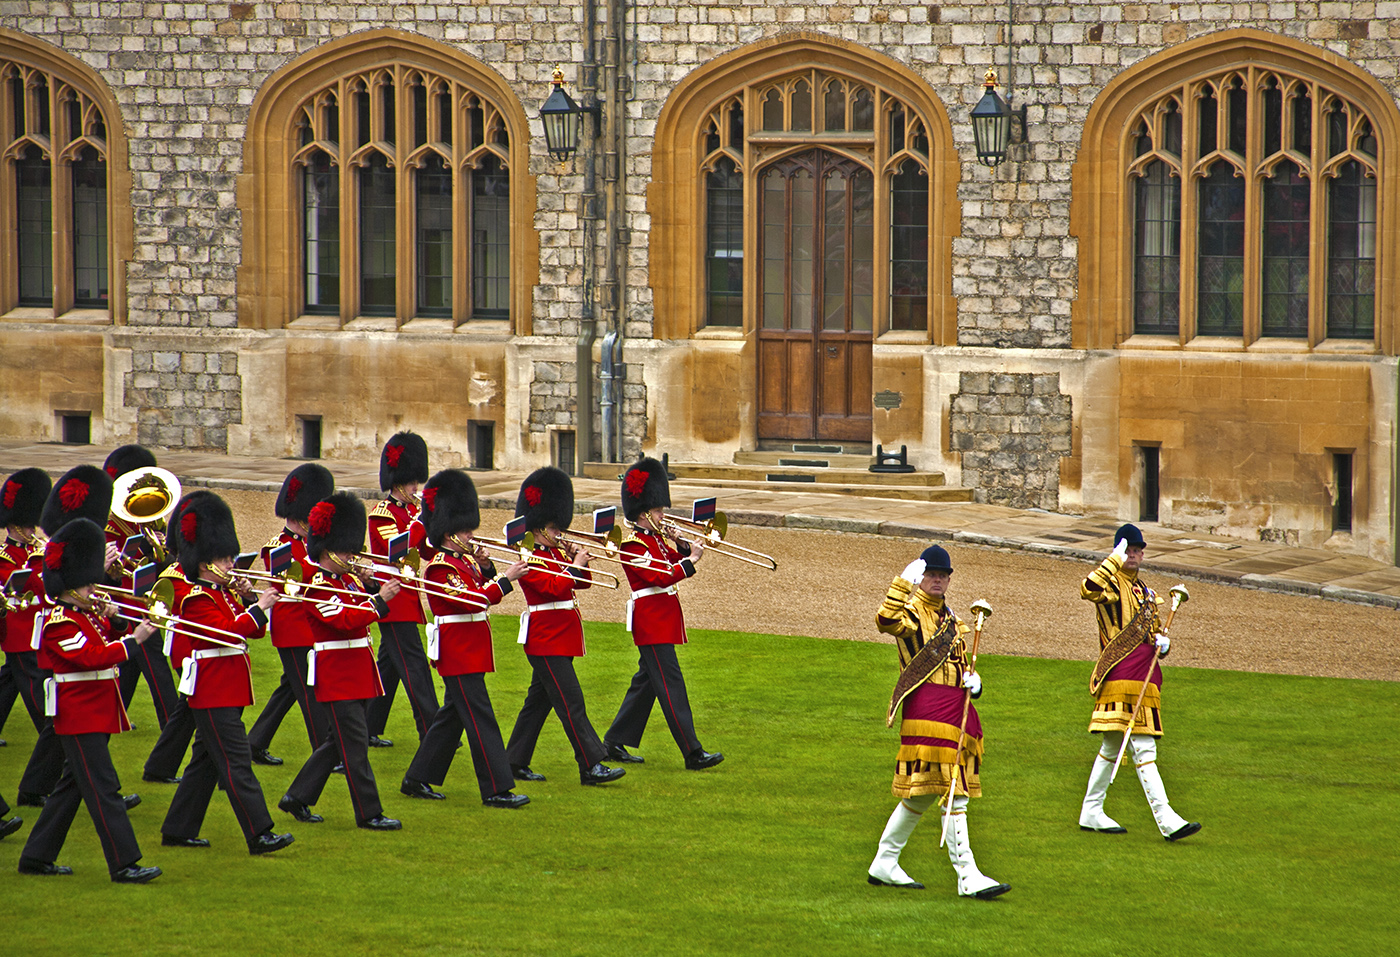 March off, Windsor